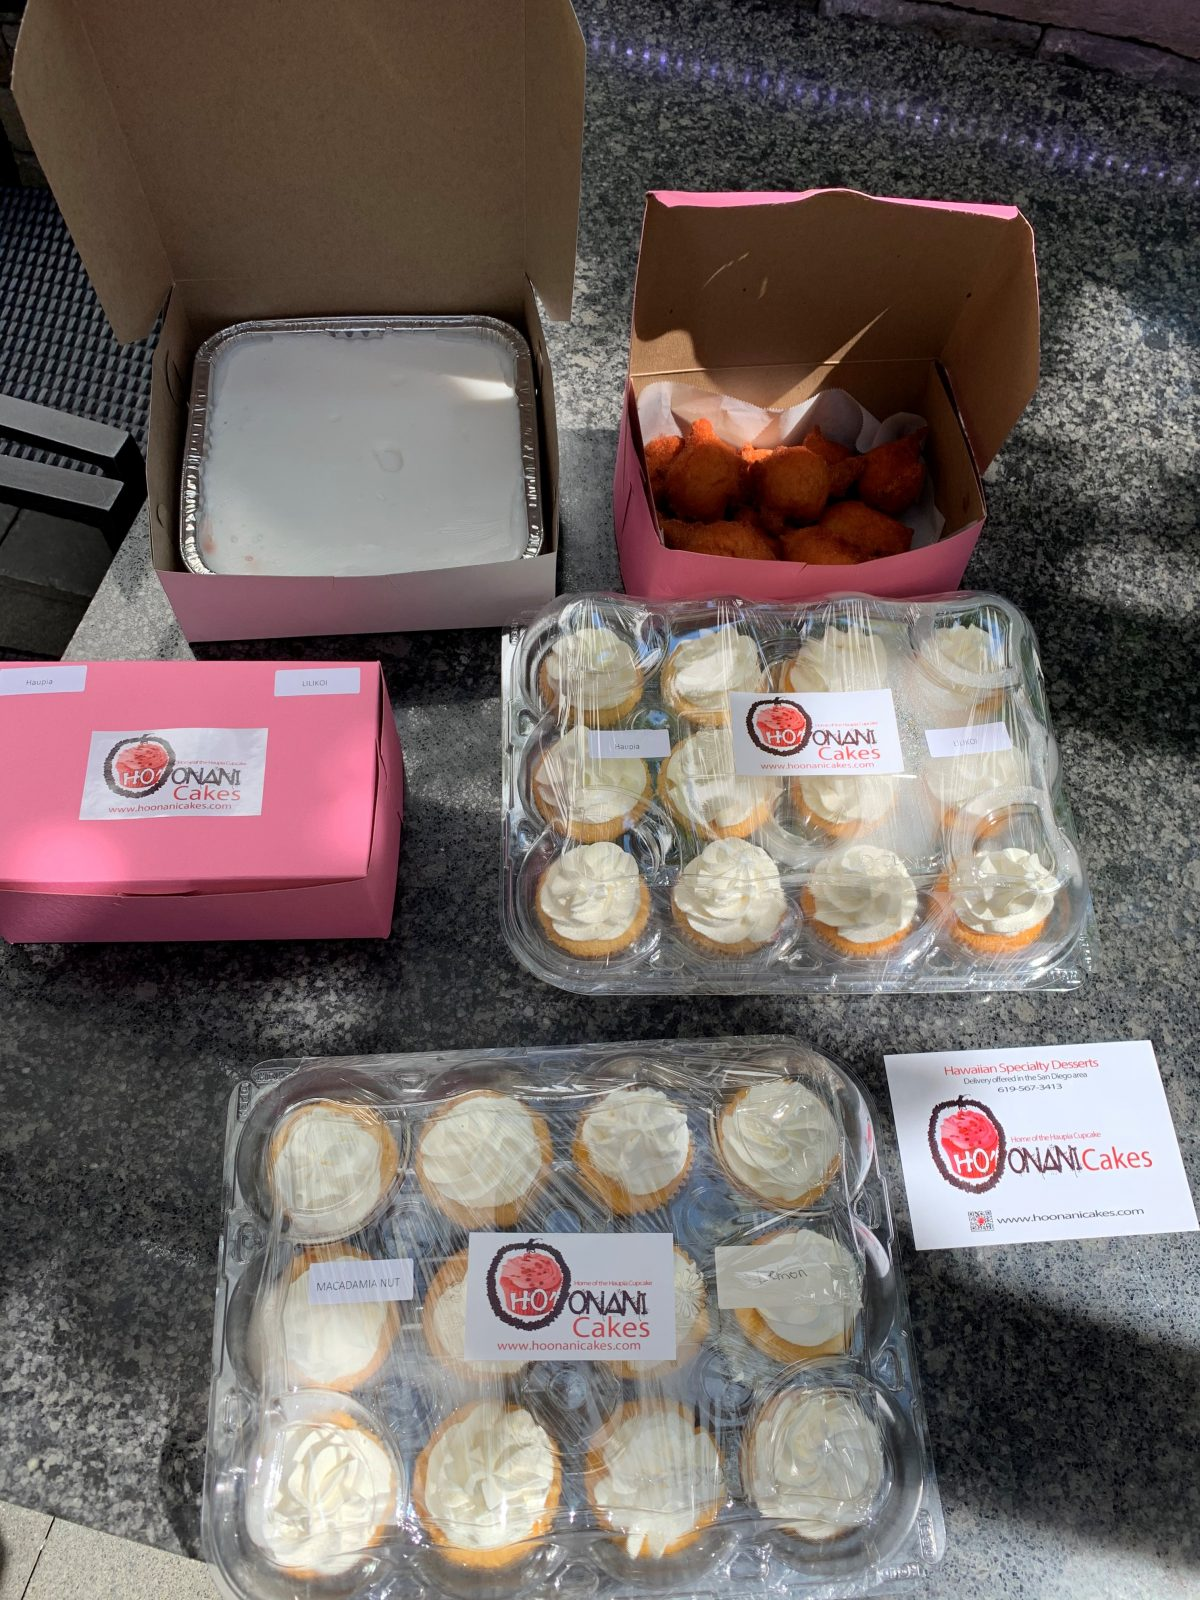 Cupcakes and other desserts in to-go packaging